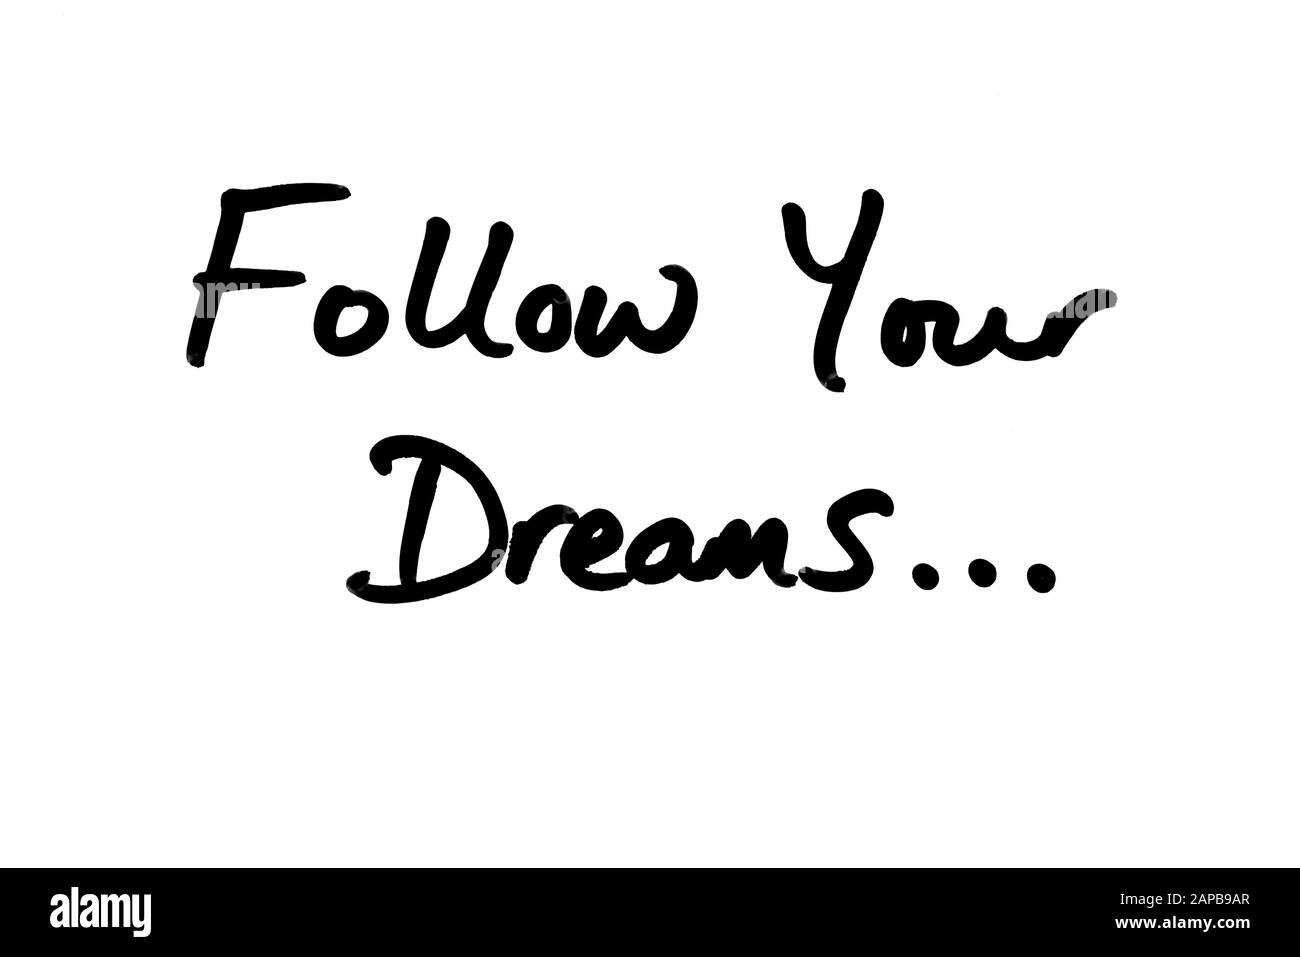 Follow Your Dreams… handwritten on a white background. Stock Photo